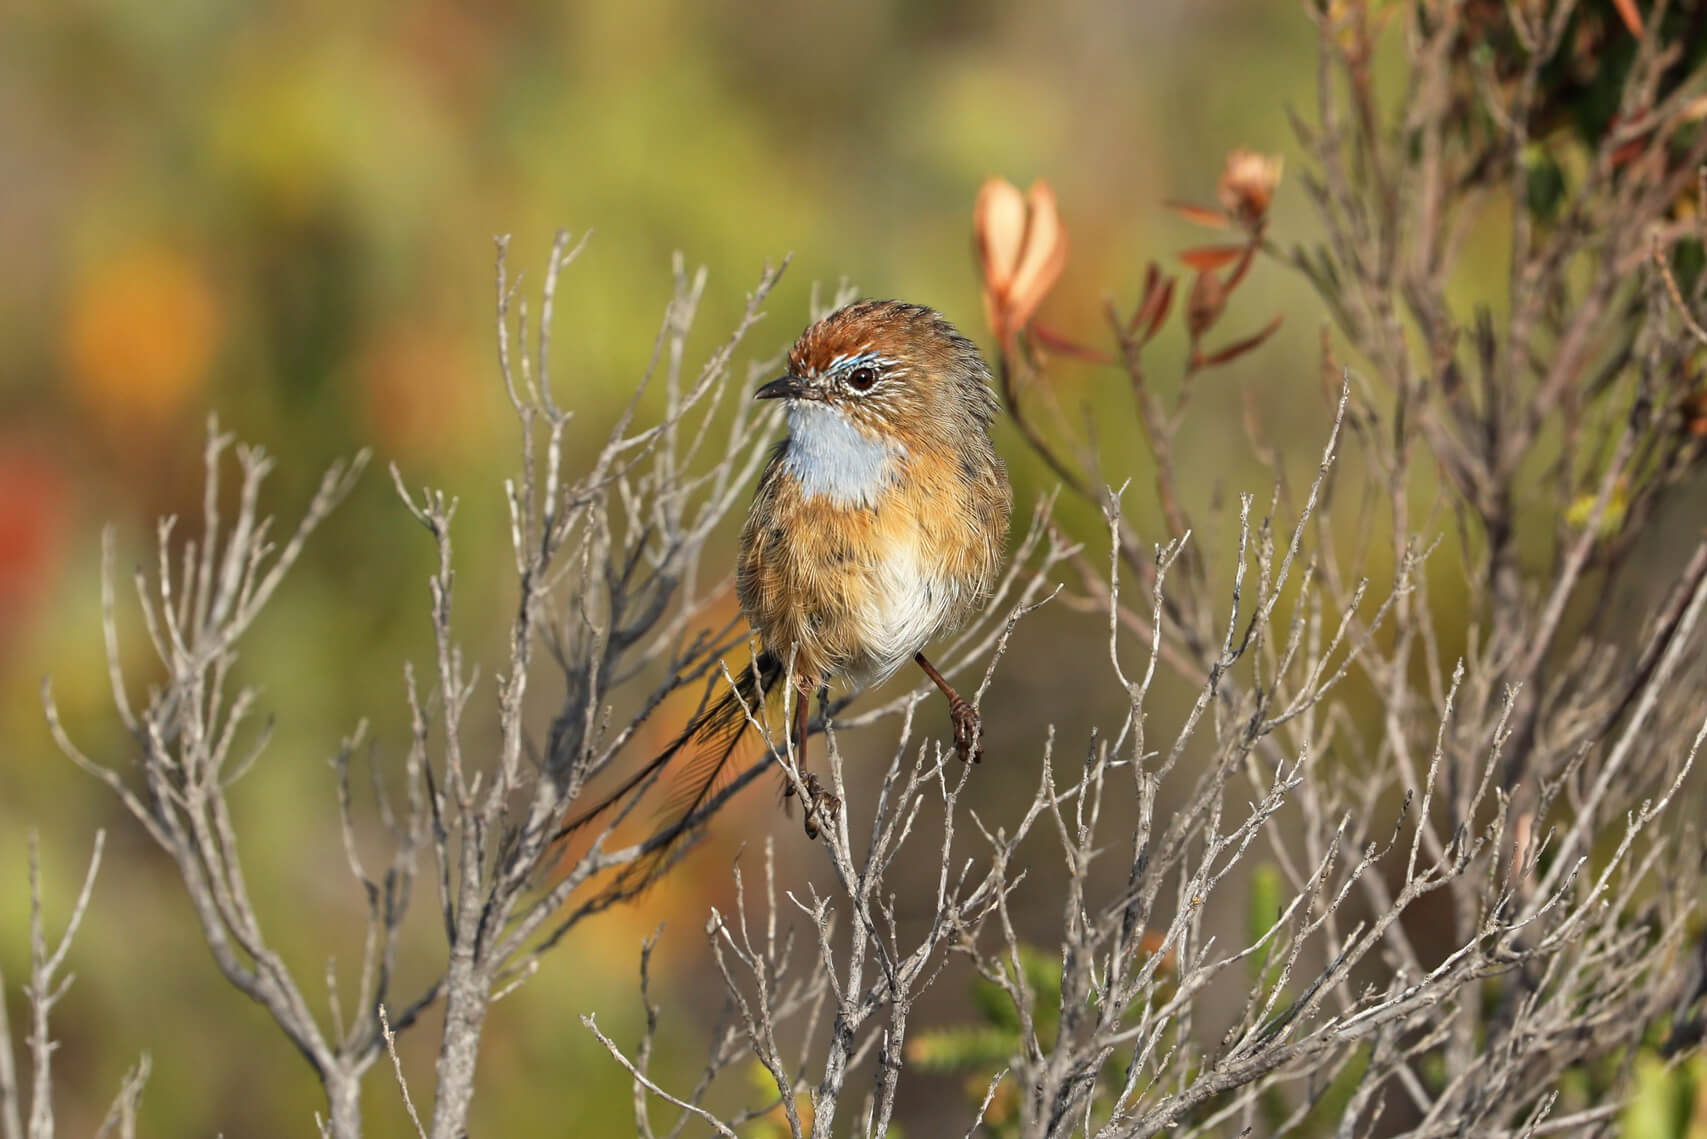 Southern Emu-wrens were found surviving in patches of unburnt vegetation © Tom Hunt